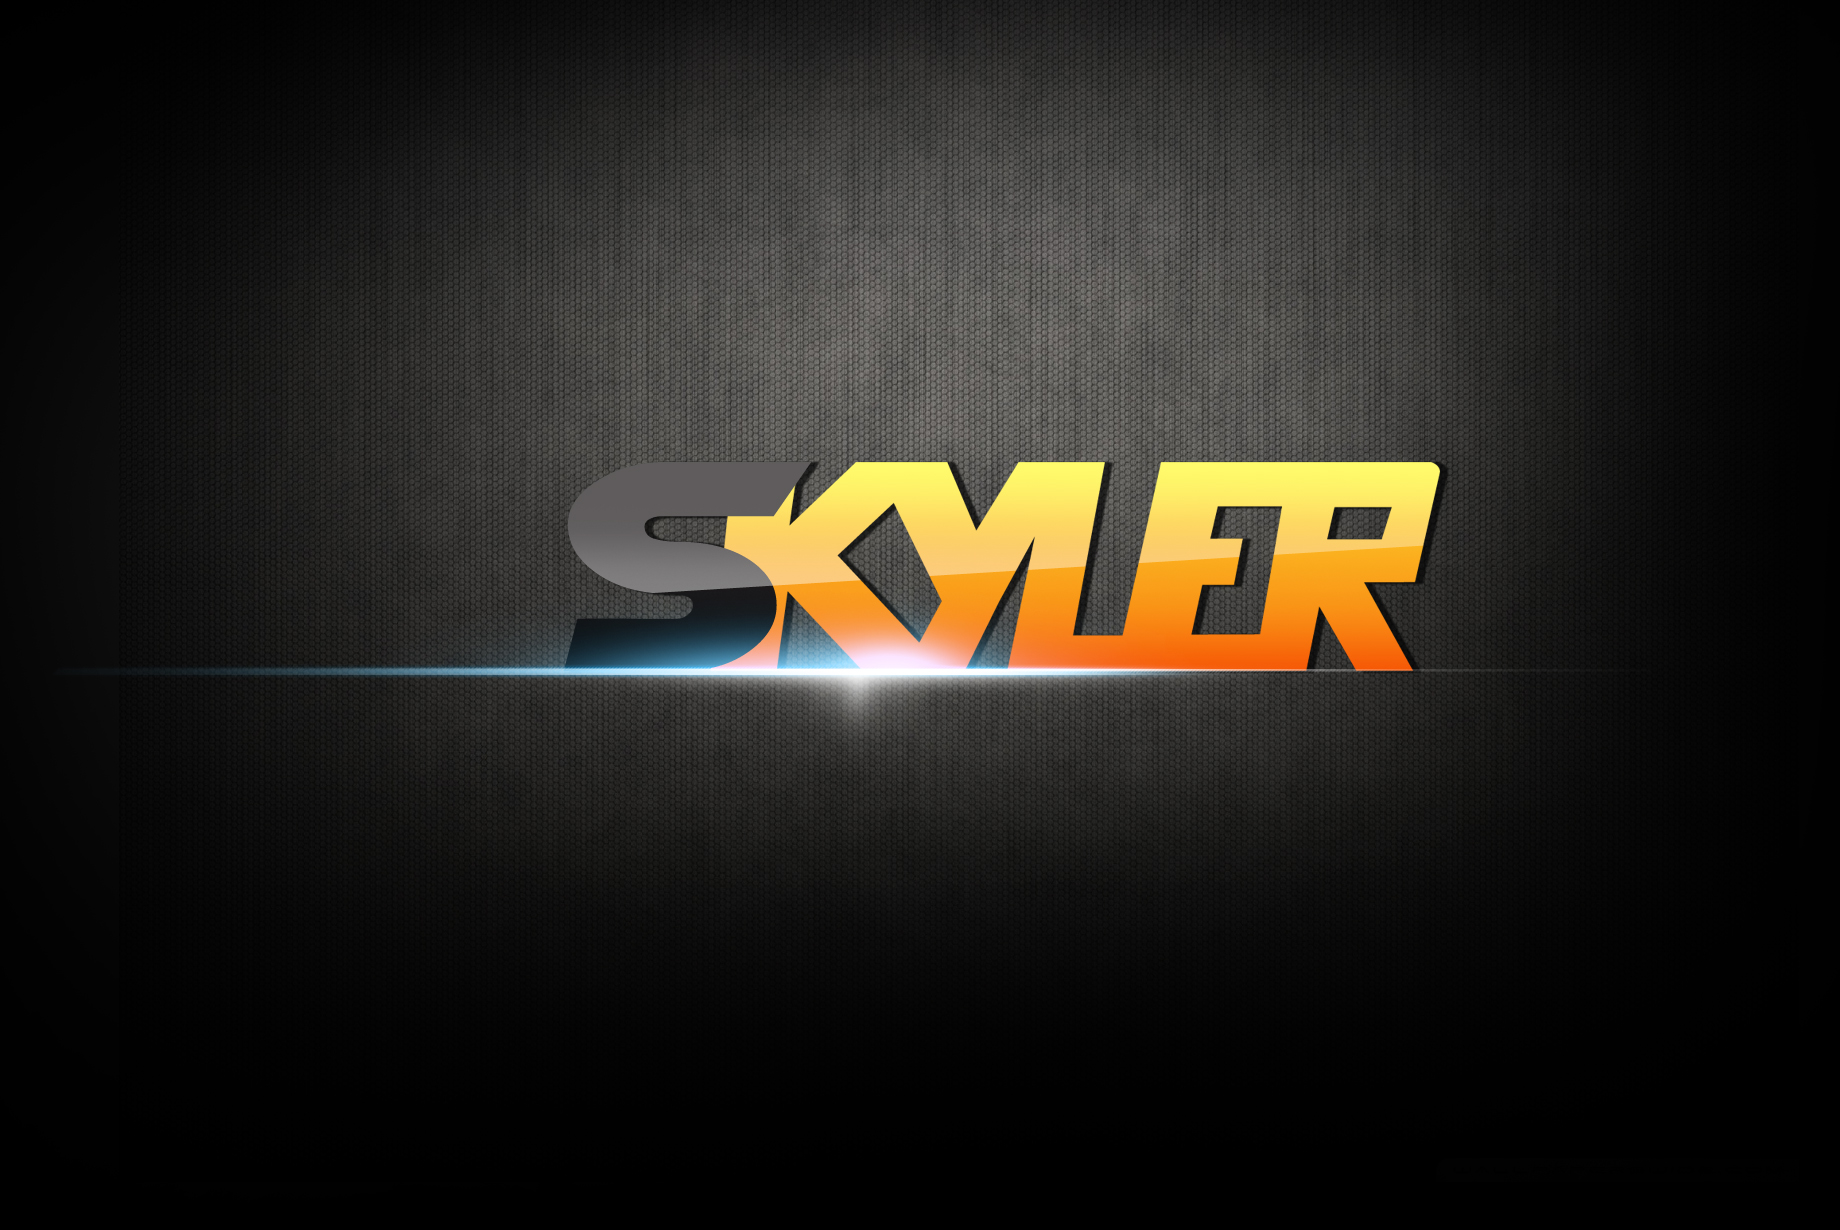 Logo Design by Jan Chua - Entry No. 164 in the Logo Design Contest Artistic Logo Design for Skyler.Asia.